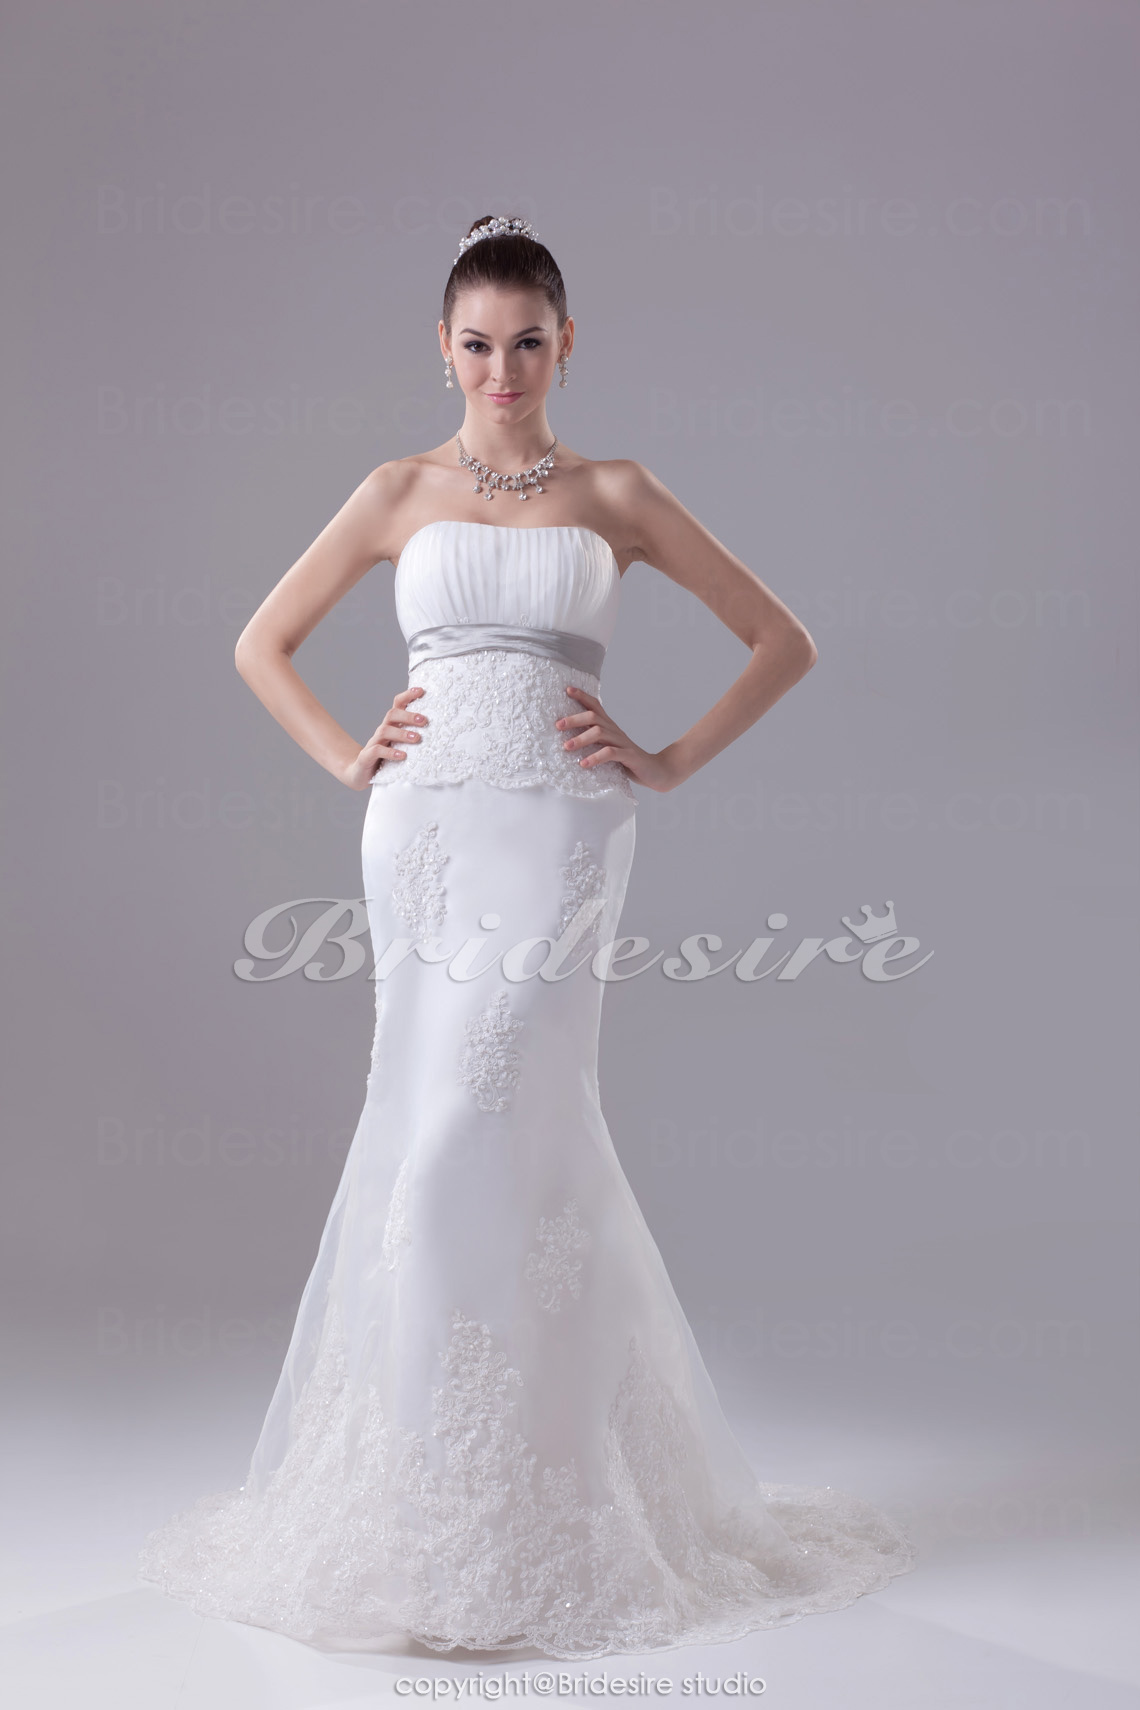 Trumpet/Mermaid Strapless Sweep Train Sleeveless Organza Lace Wedding Dress